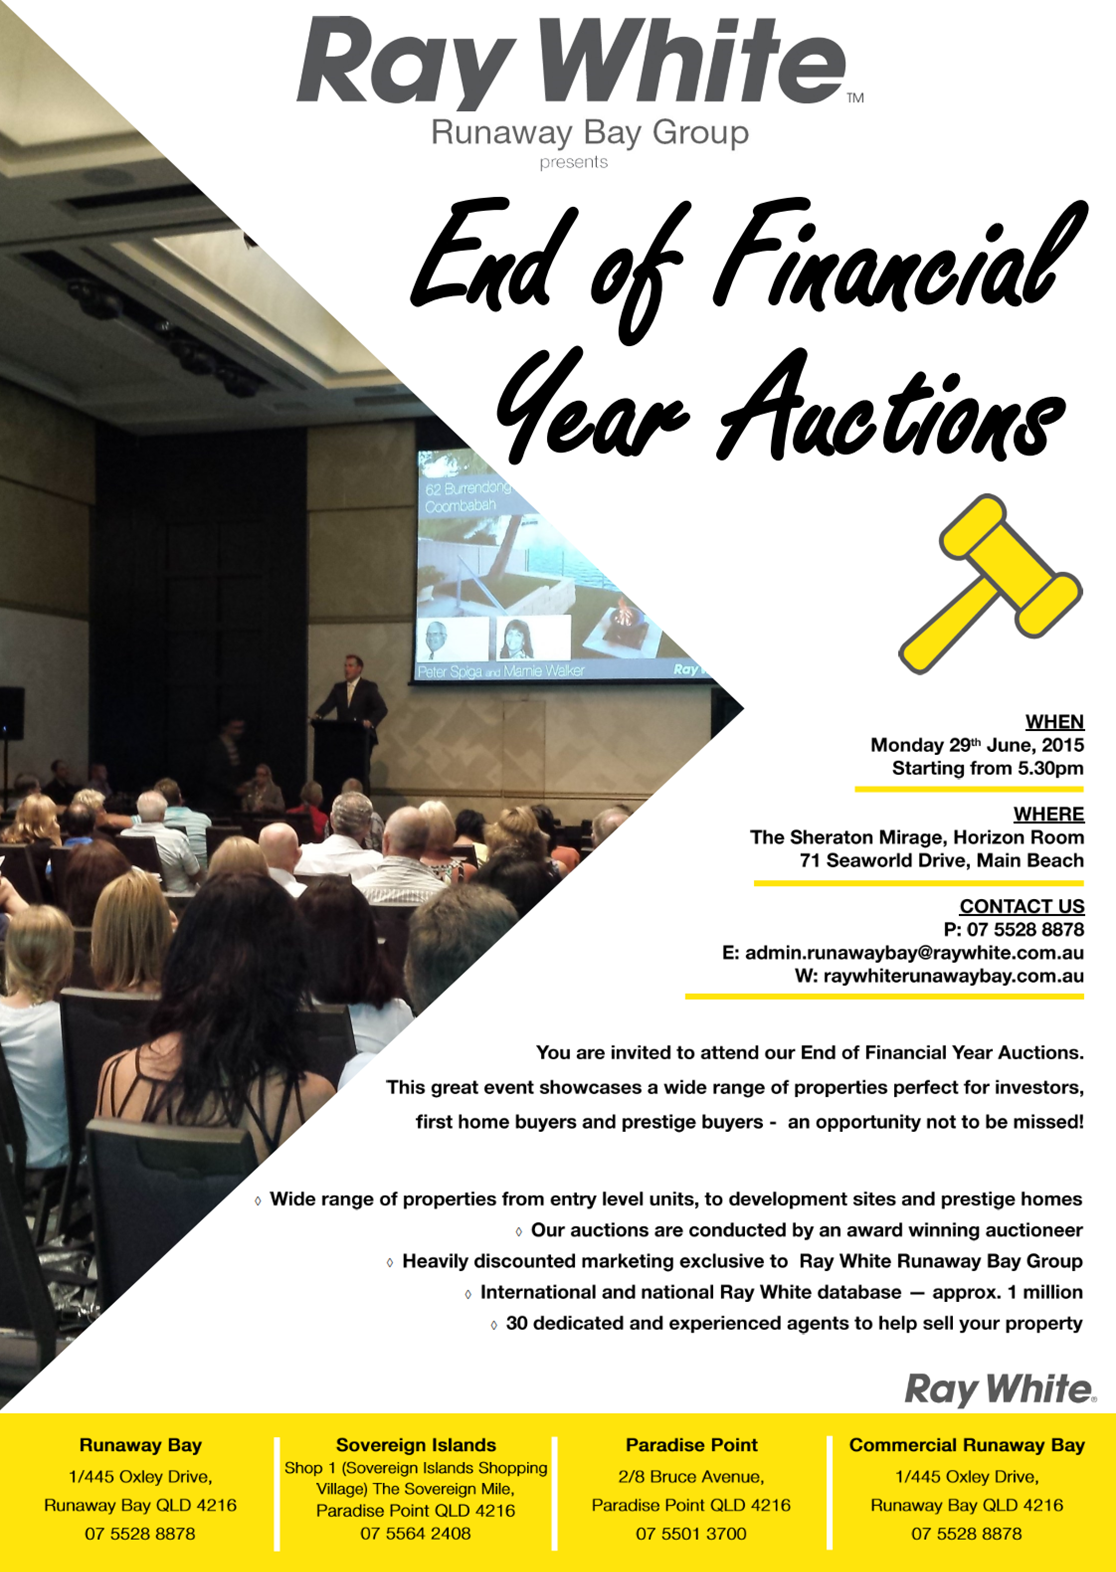 End of Financial Year Auction - Image